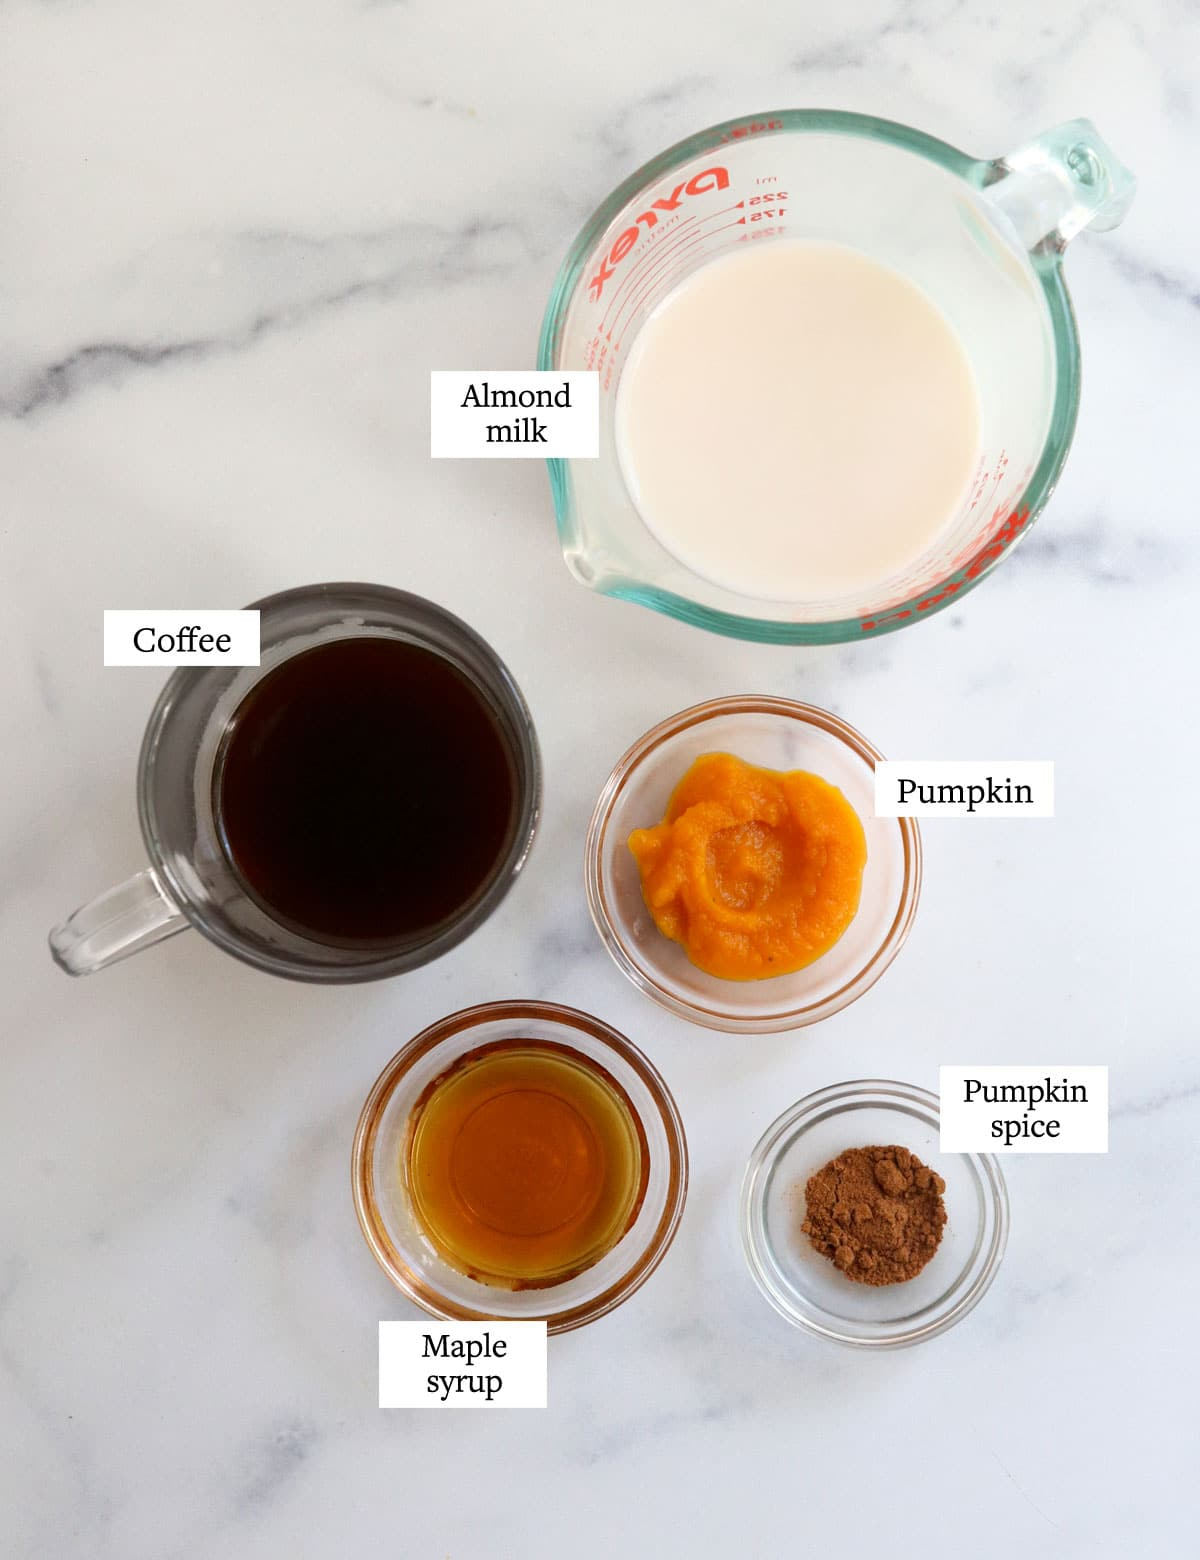 pumpkin, coffee, almond milk, maple syrup, and spice on a white surface